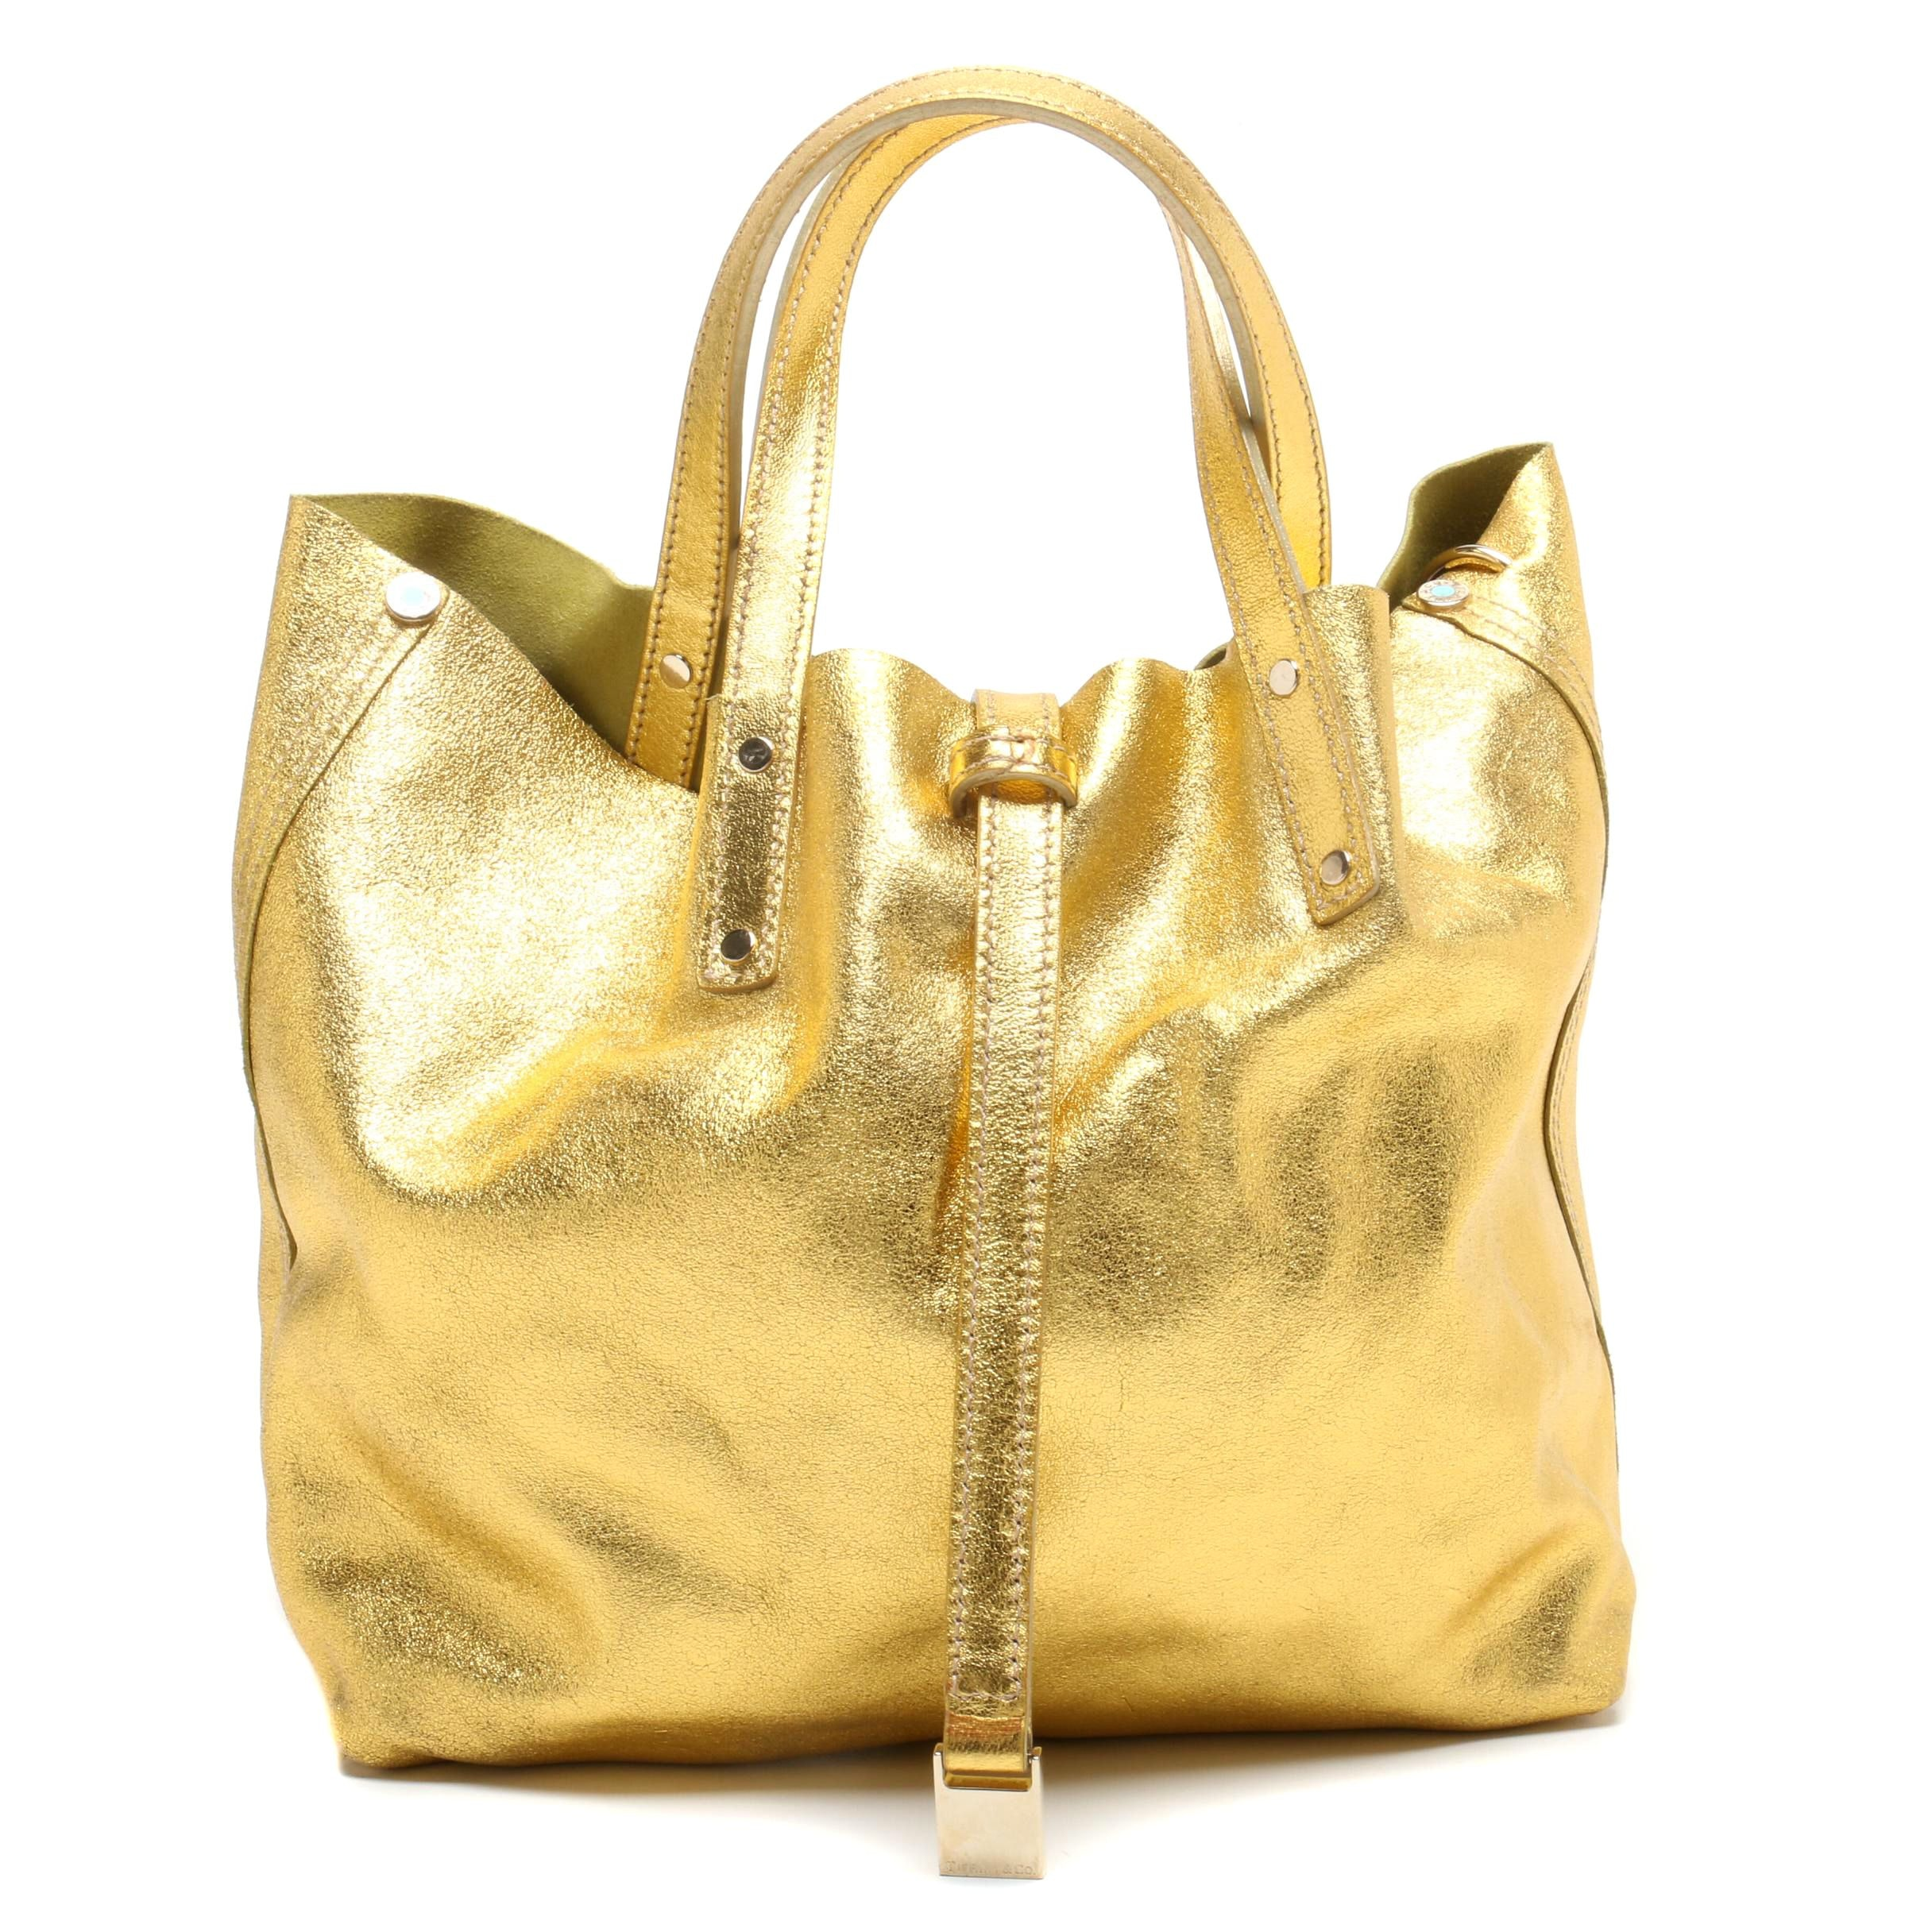 Tiffany & Co. Metallic Gold Leather and Green Suede Reversible Tote